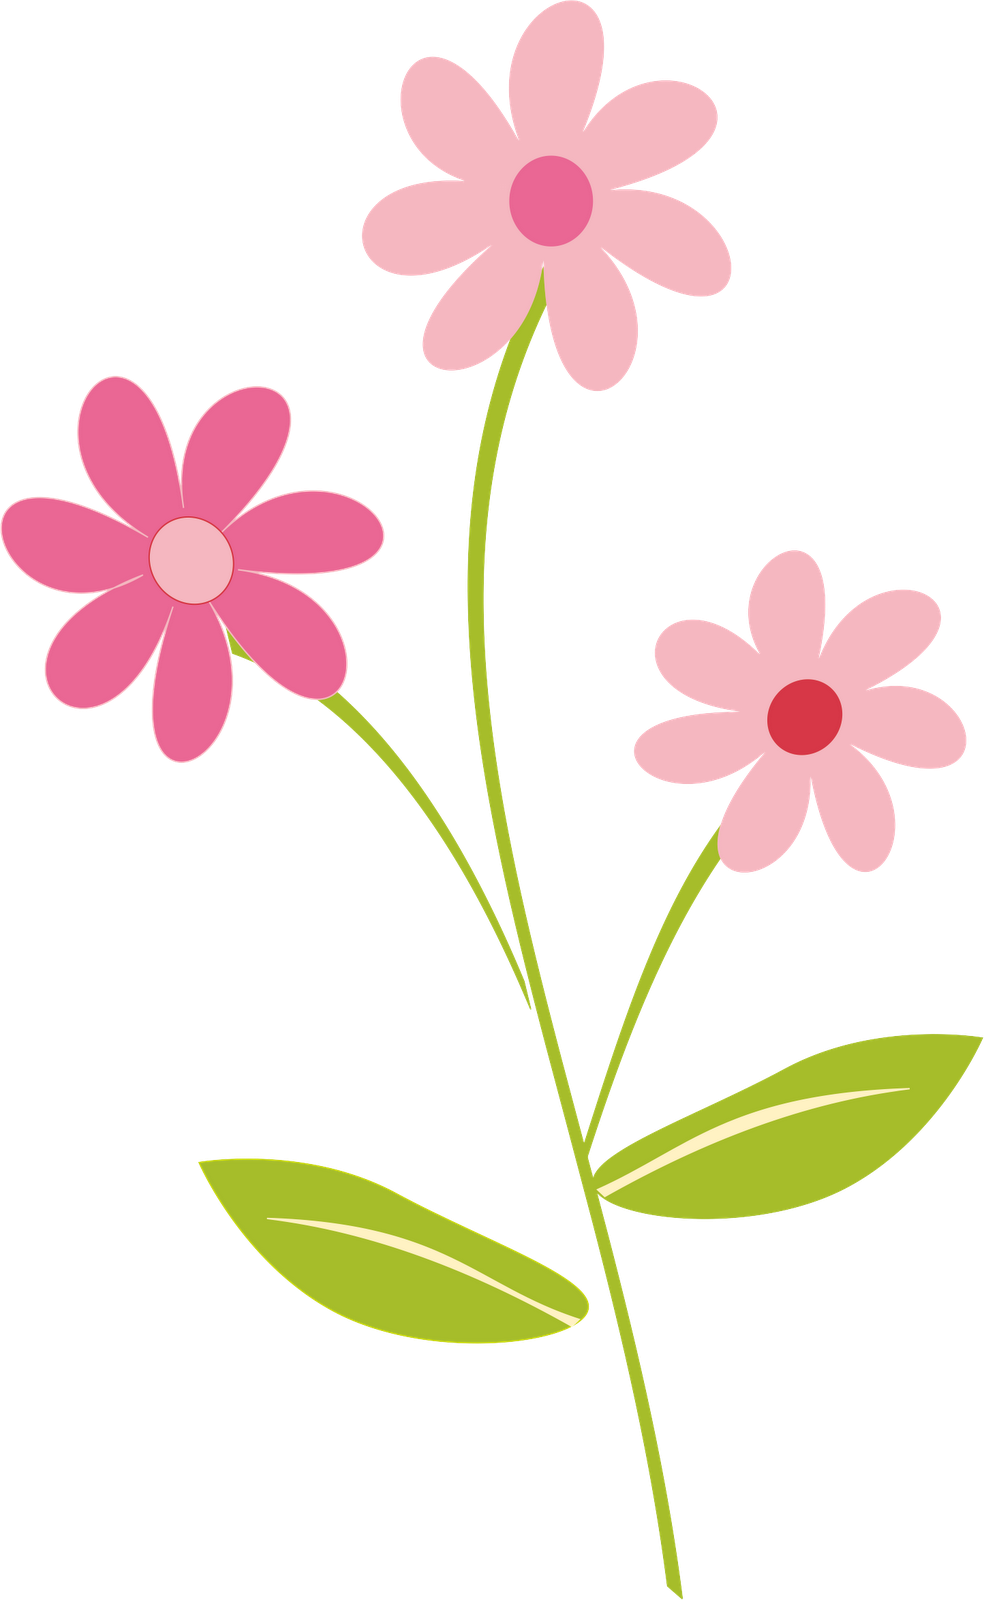 Cartoon flowers cliparts free download best cartoon flowers 984x1600 pretty clipart cute flower mightylinksfo